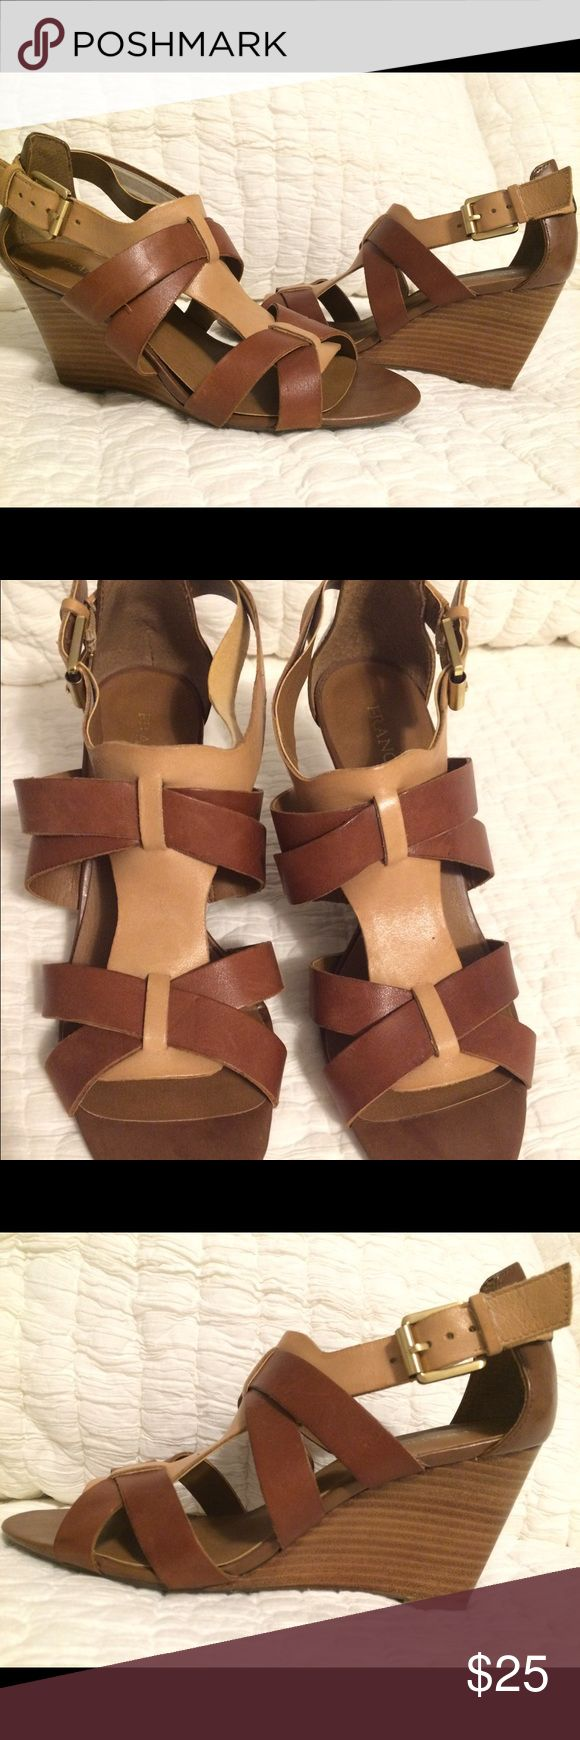 "Franco Sarto neutral wedges Great wedge!! Goes with everything and very comfortable! These neutral wedges have a 3"" heel. In really great condition but have been worn, thus having some signs of use on the toes as shown in picture. Otherwise they look so great! I have too many sandals otherwise would keep these 😉 Franco Sarto Shoes Wedges"